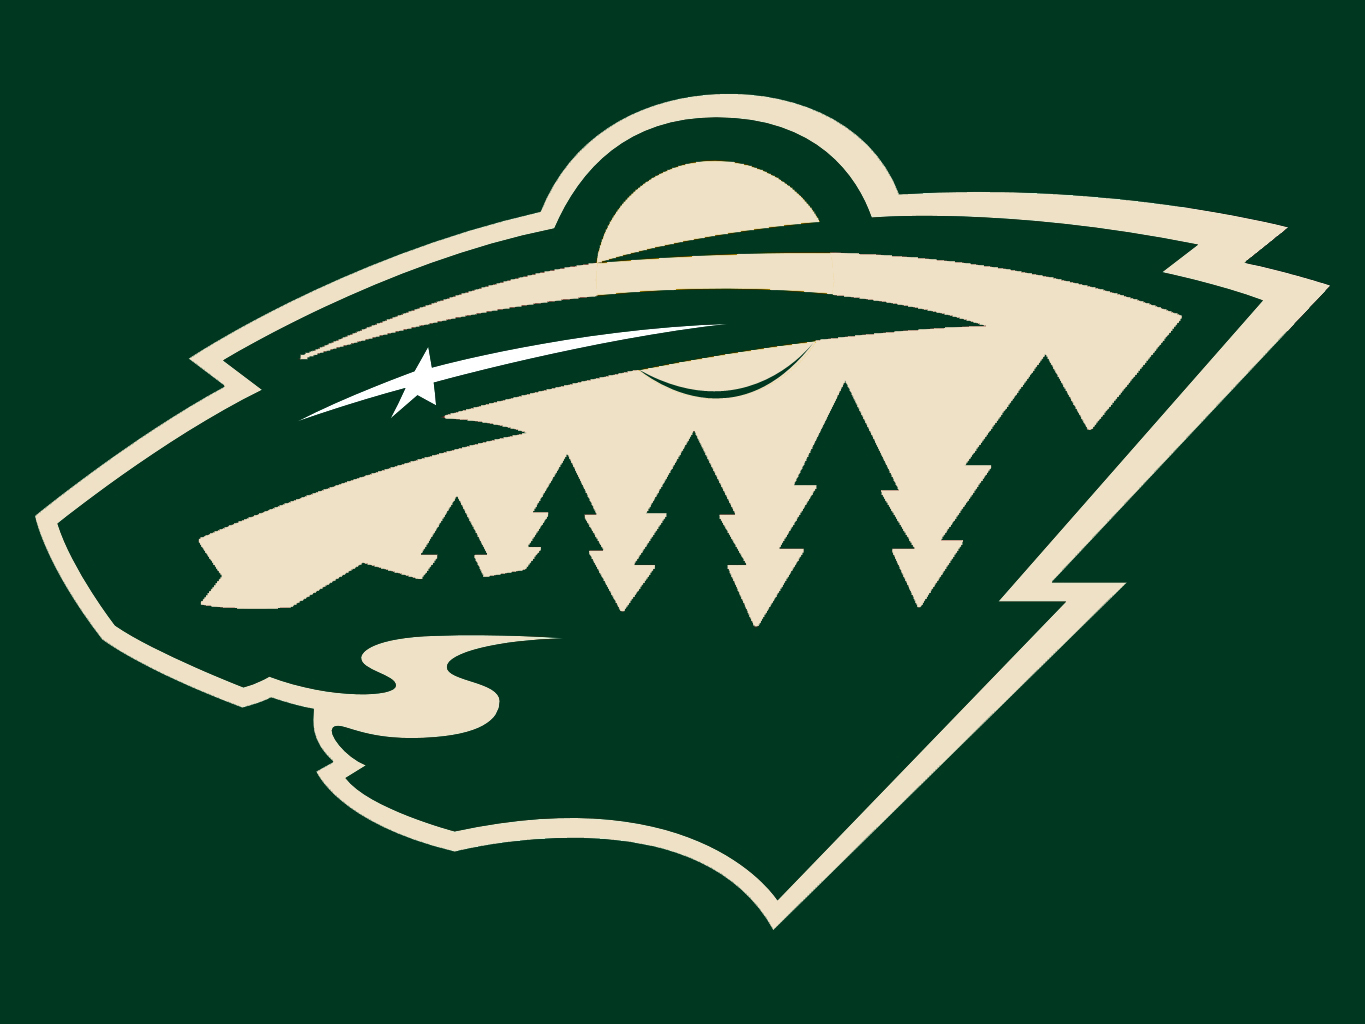 Minnesota wild hd wallpapers wallpapersafari - Minnesota wild logo ...